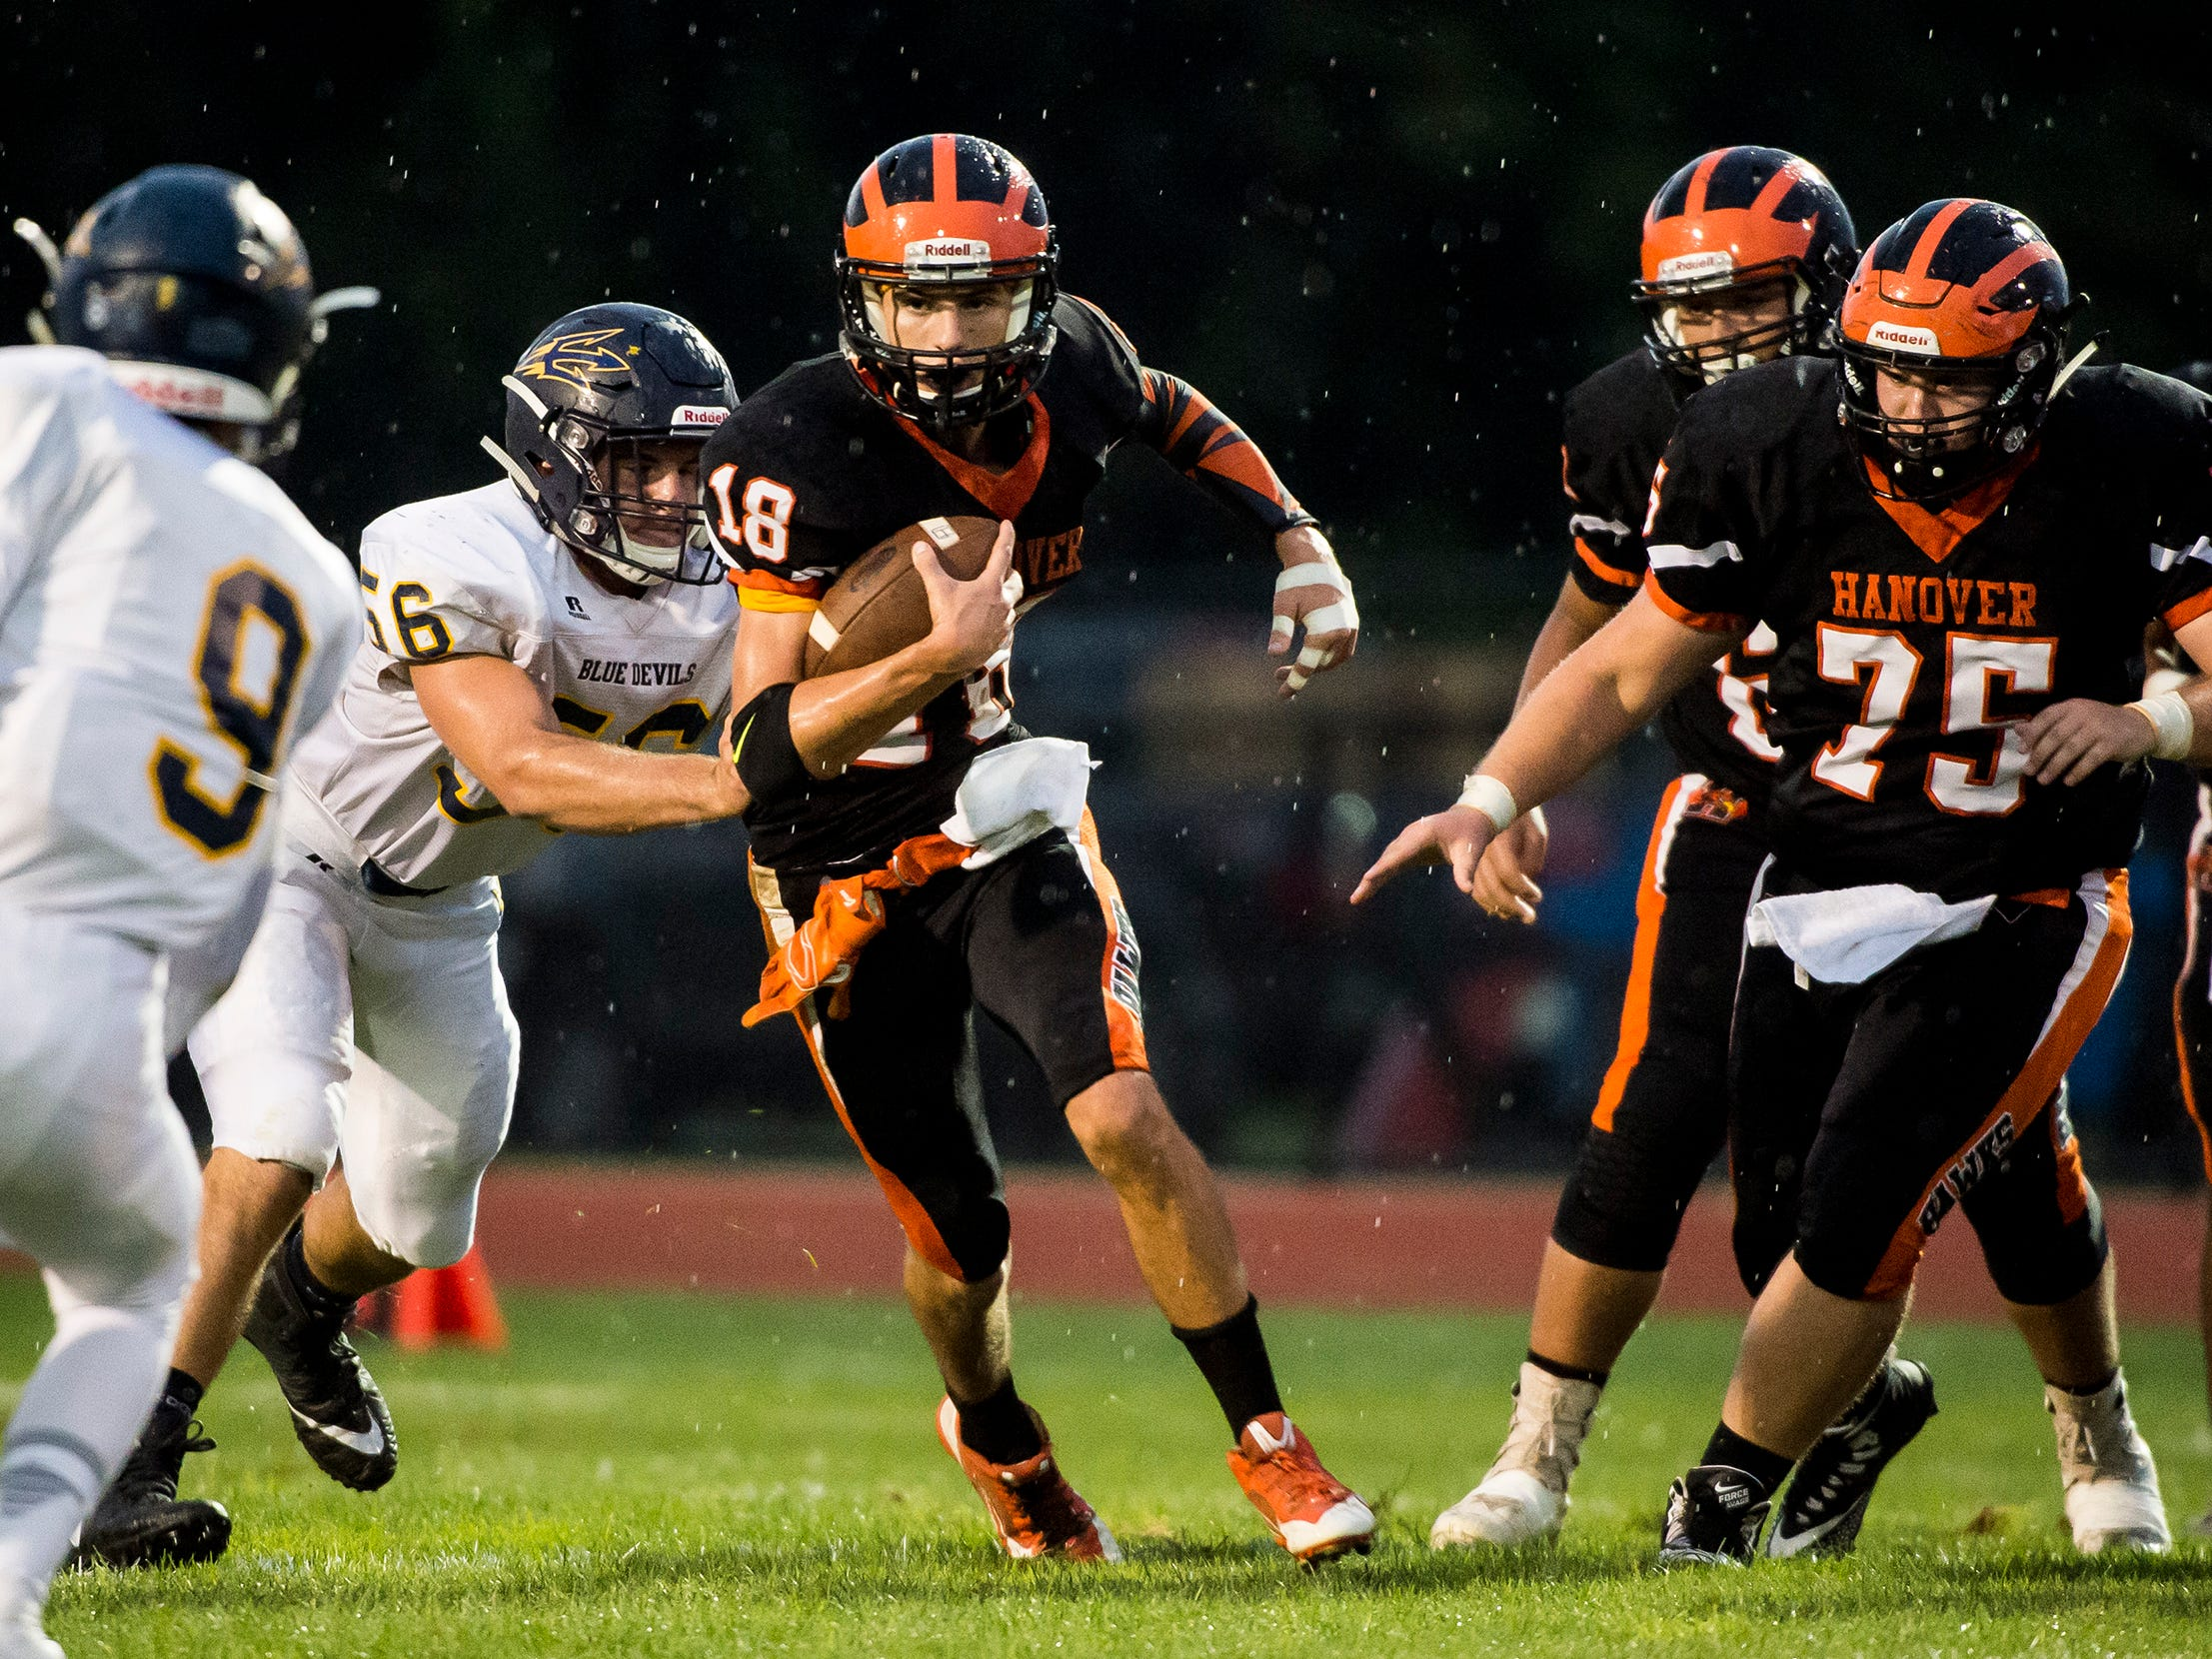 Hanover's Sam Duvall runs with the ball against Greencastle-Antrim on Friday, September 7, 2018.